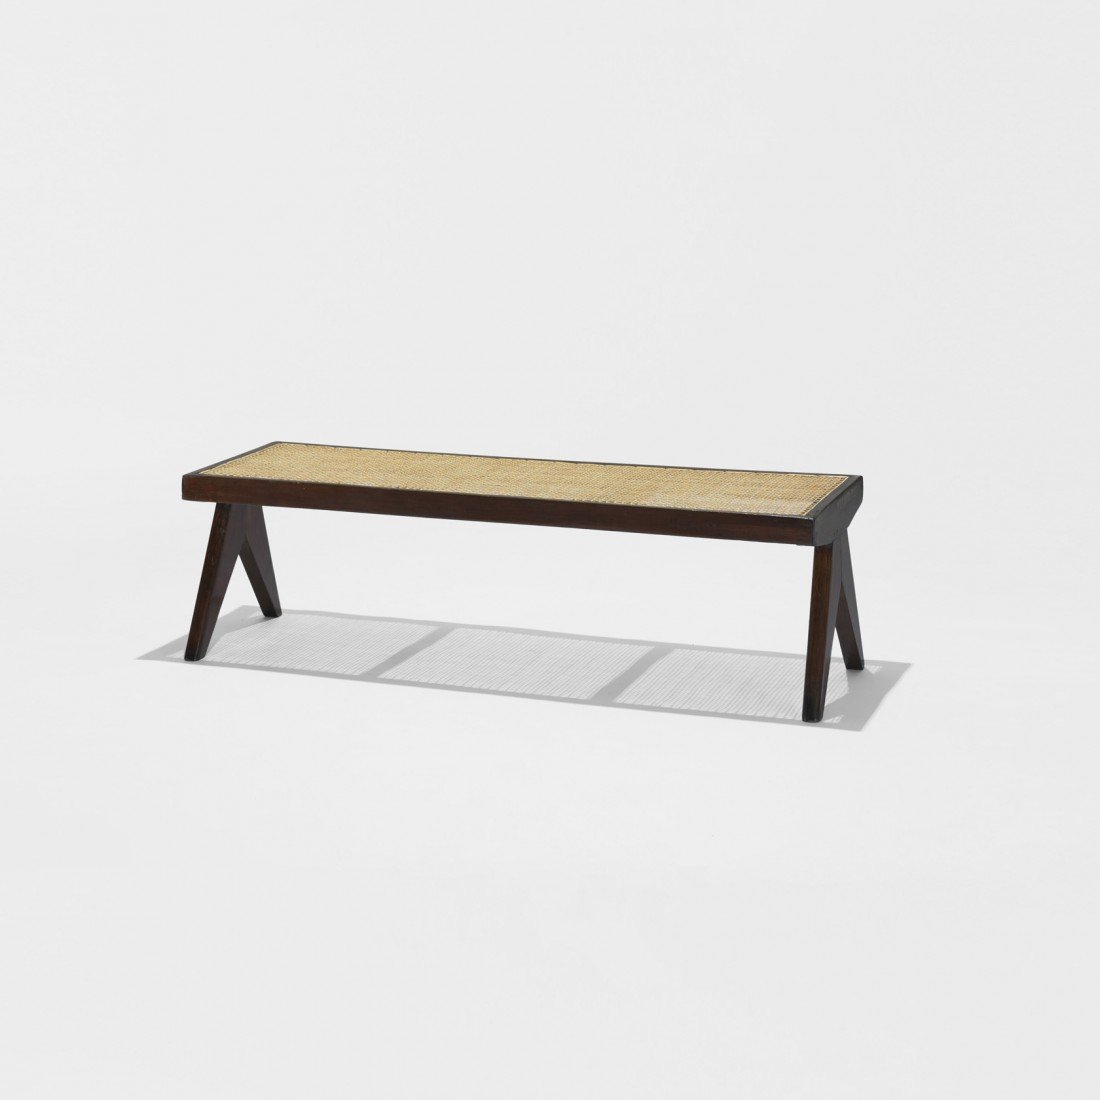 163: Pierre Jeanneret bench